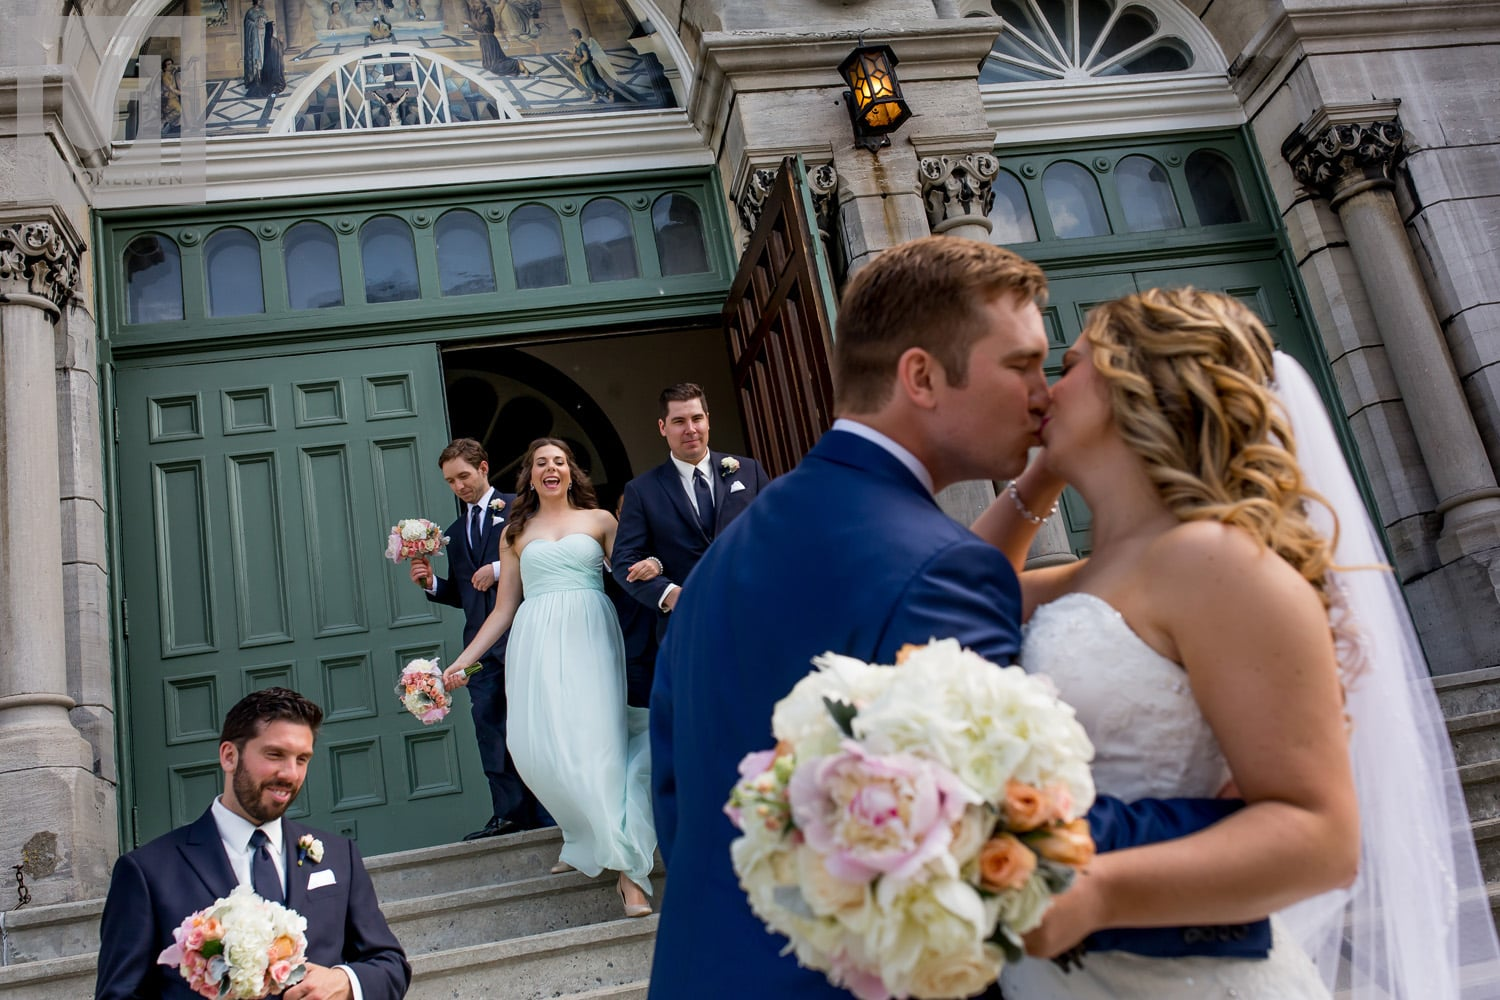 bride and groom kissing outside church while bridesmaids and groomsmen walk out